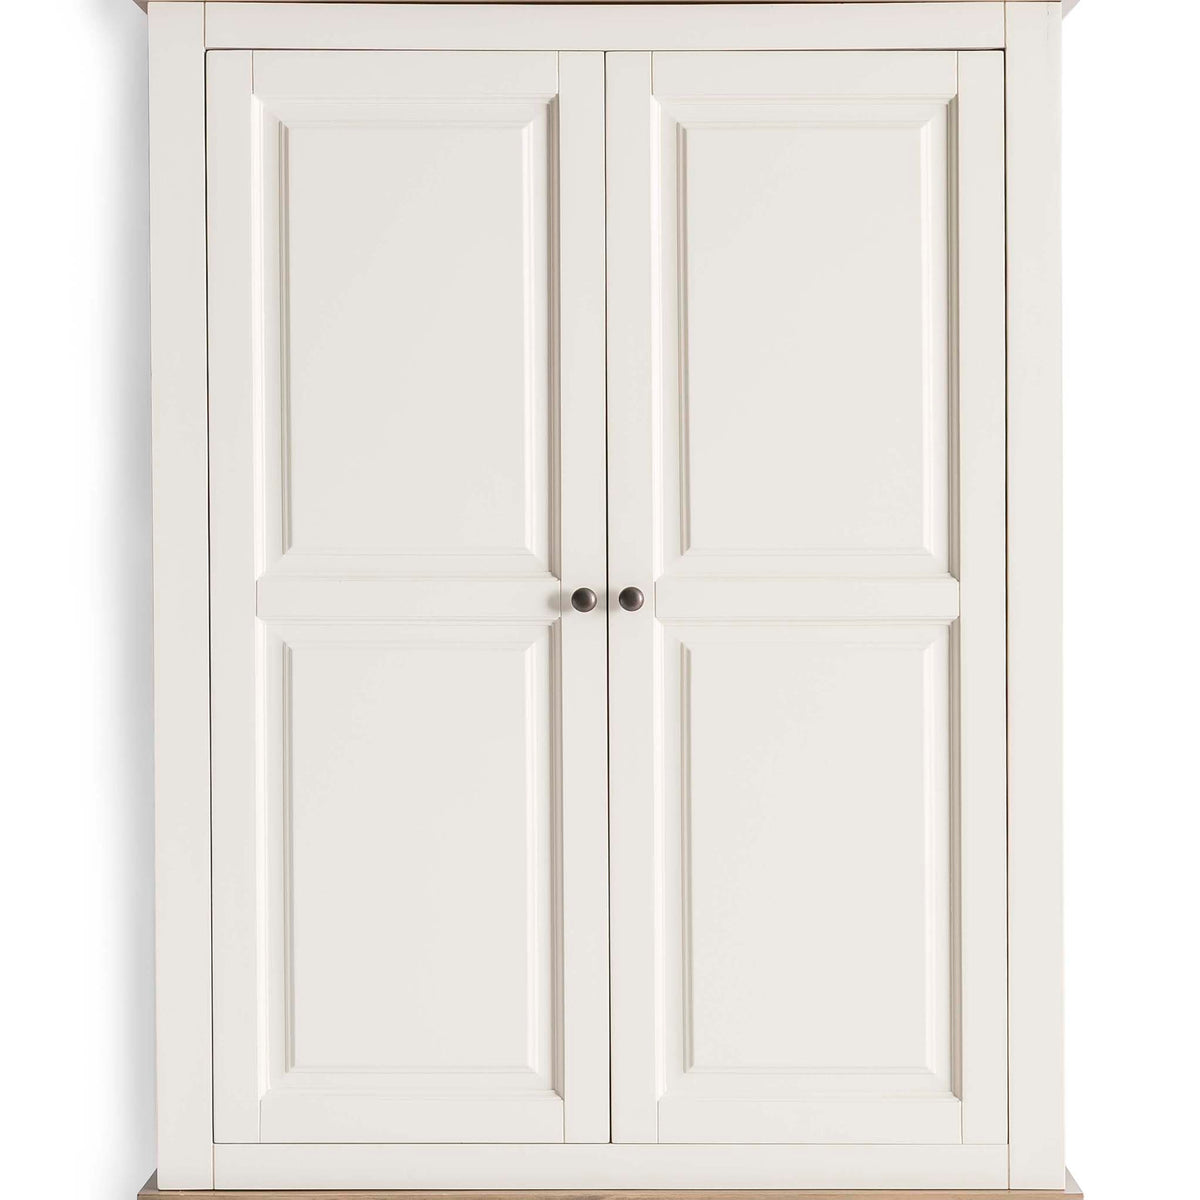 Hove Ivory Double Wardrobe with Drawers - Close up of wardrobe doors